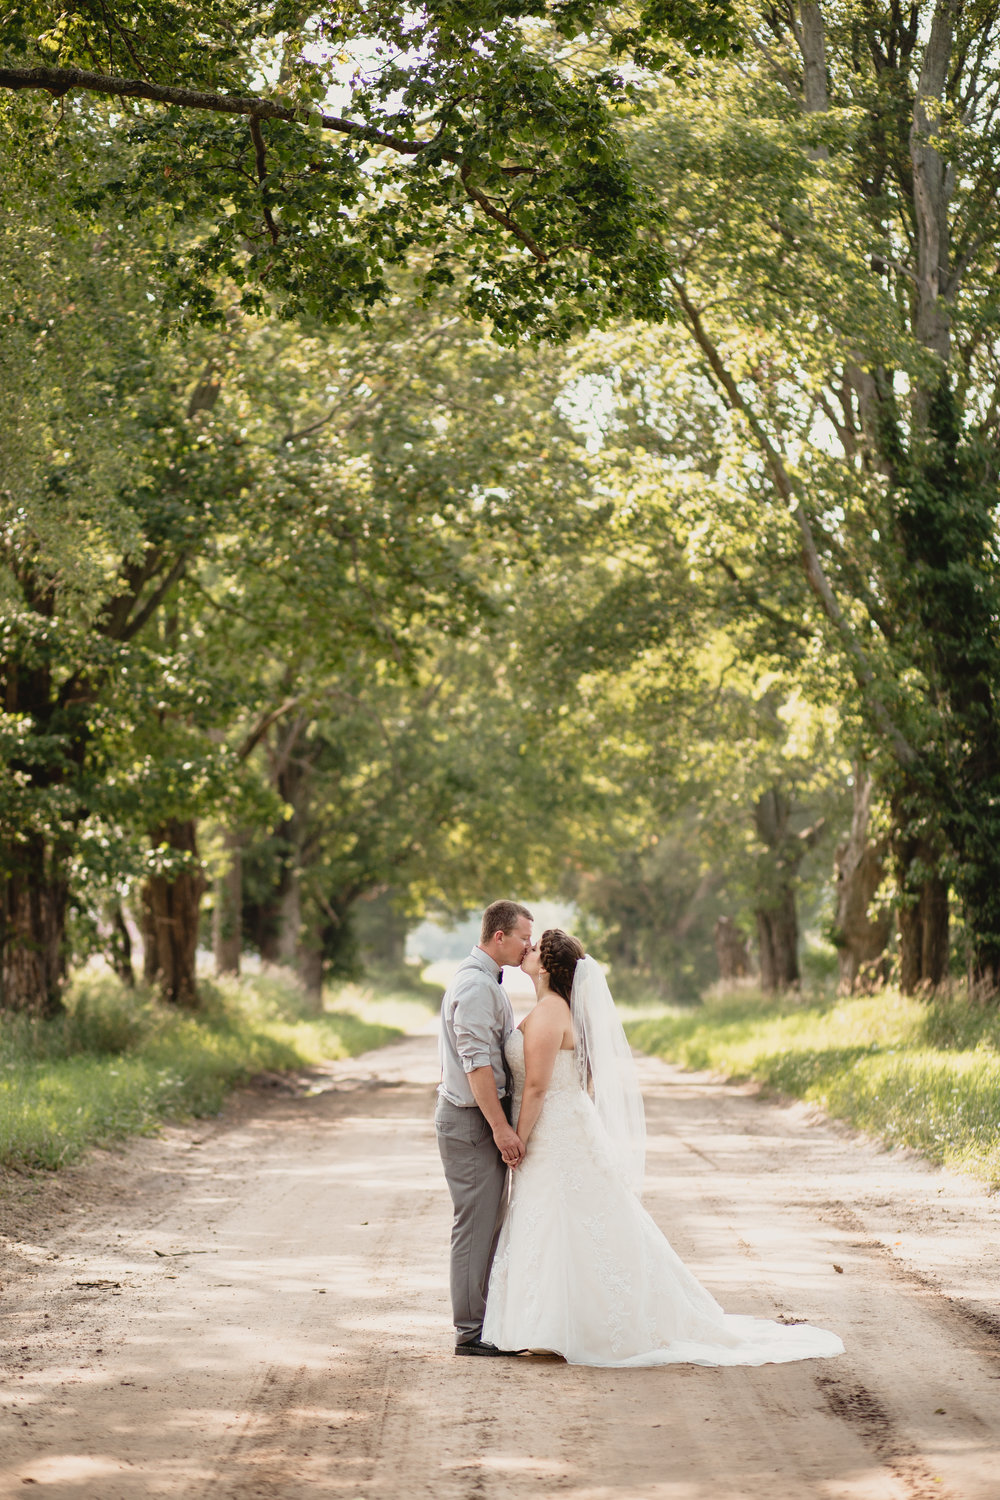 west-michigan-wedding-photographer-ludington-mi-trillium-creek-jaclyn-russ-165.jpg